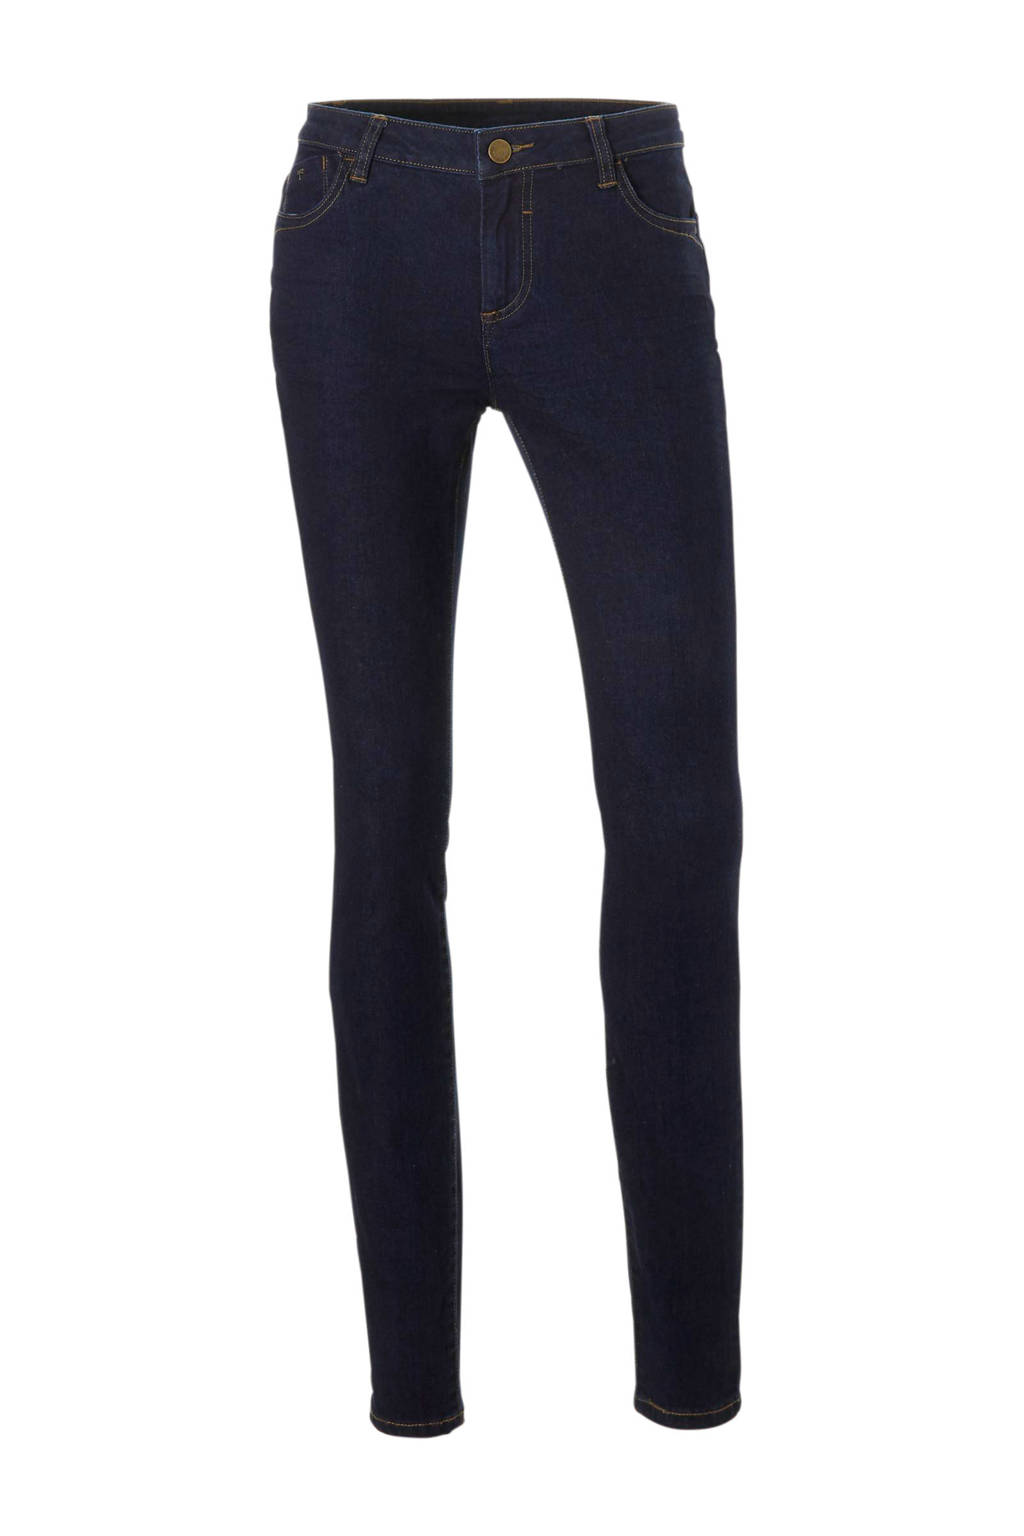 C&A Yessica skinny jeans donker blauw, Donkerblauw